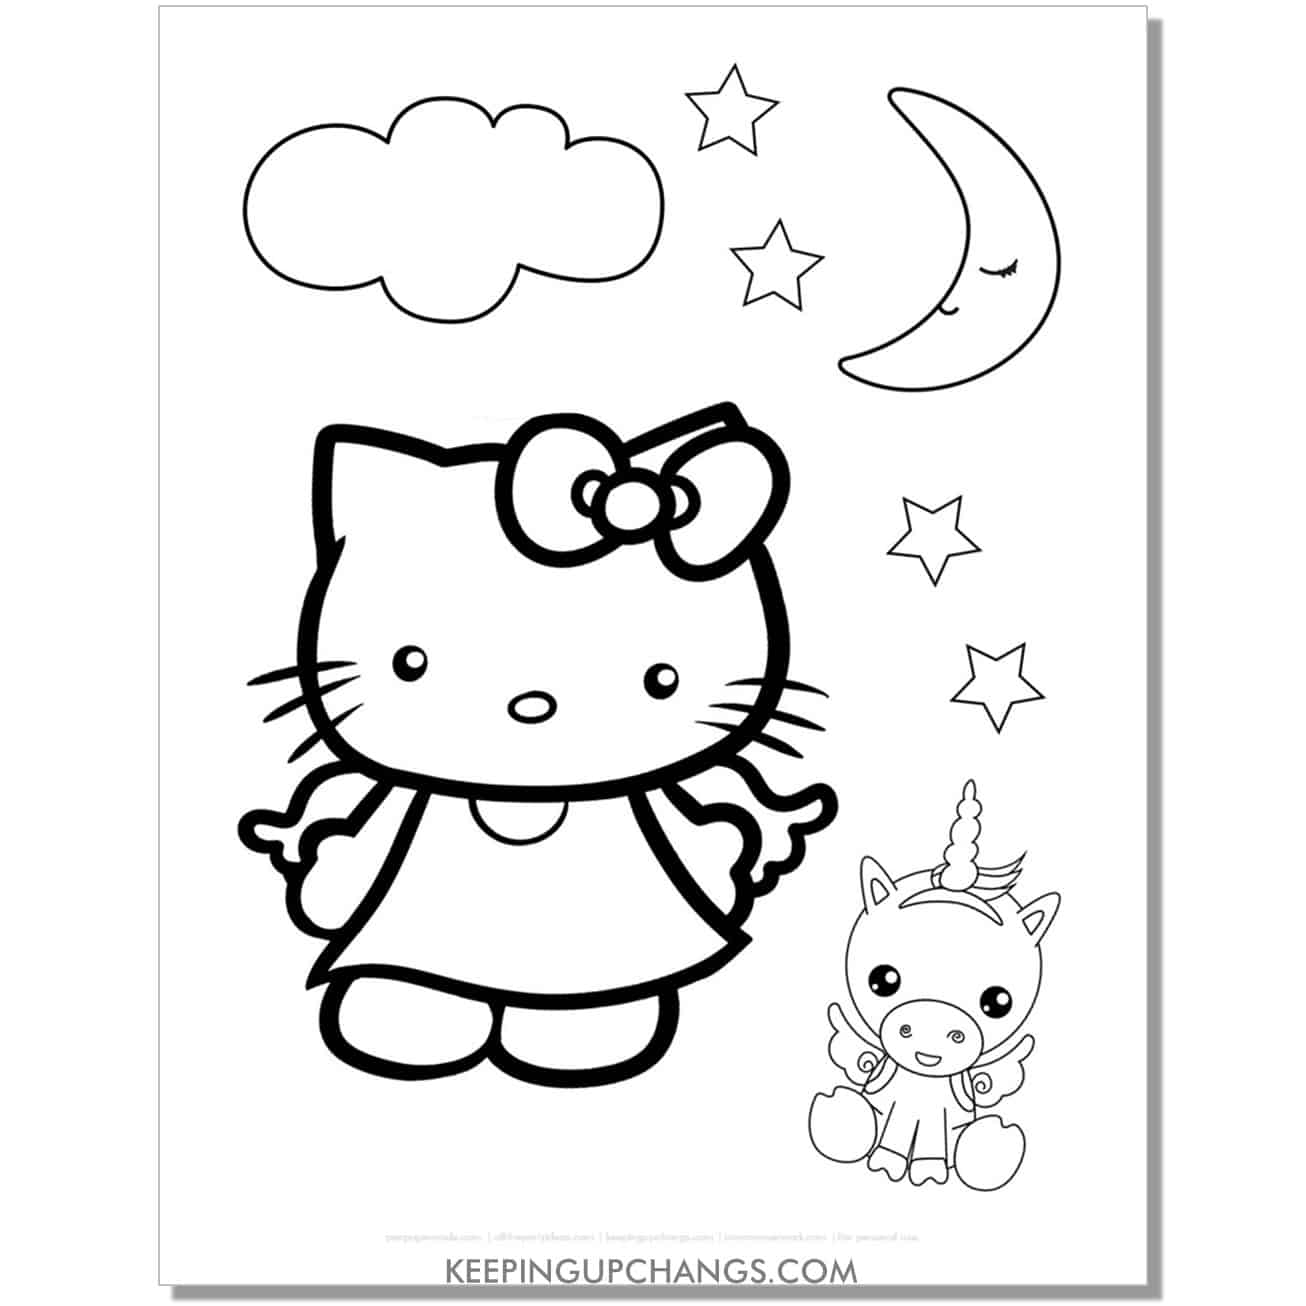 unicorn hello kitty bedtime dream coloring page.